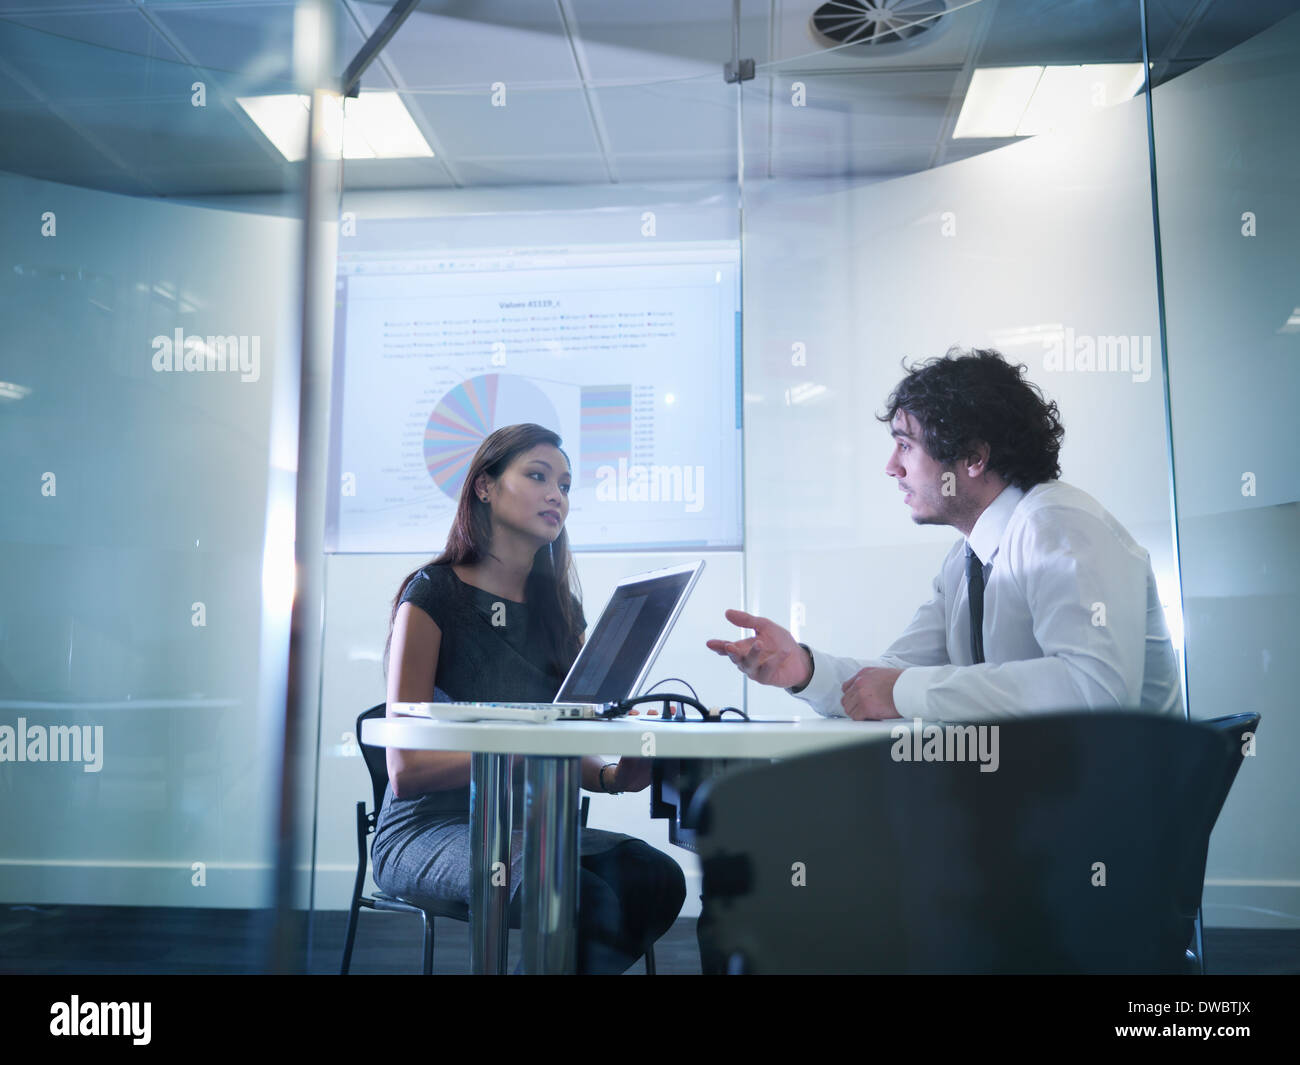 View through glass windows of meeting room of business colleagues in discussion - Stock Image